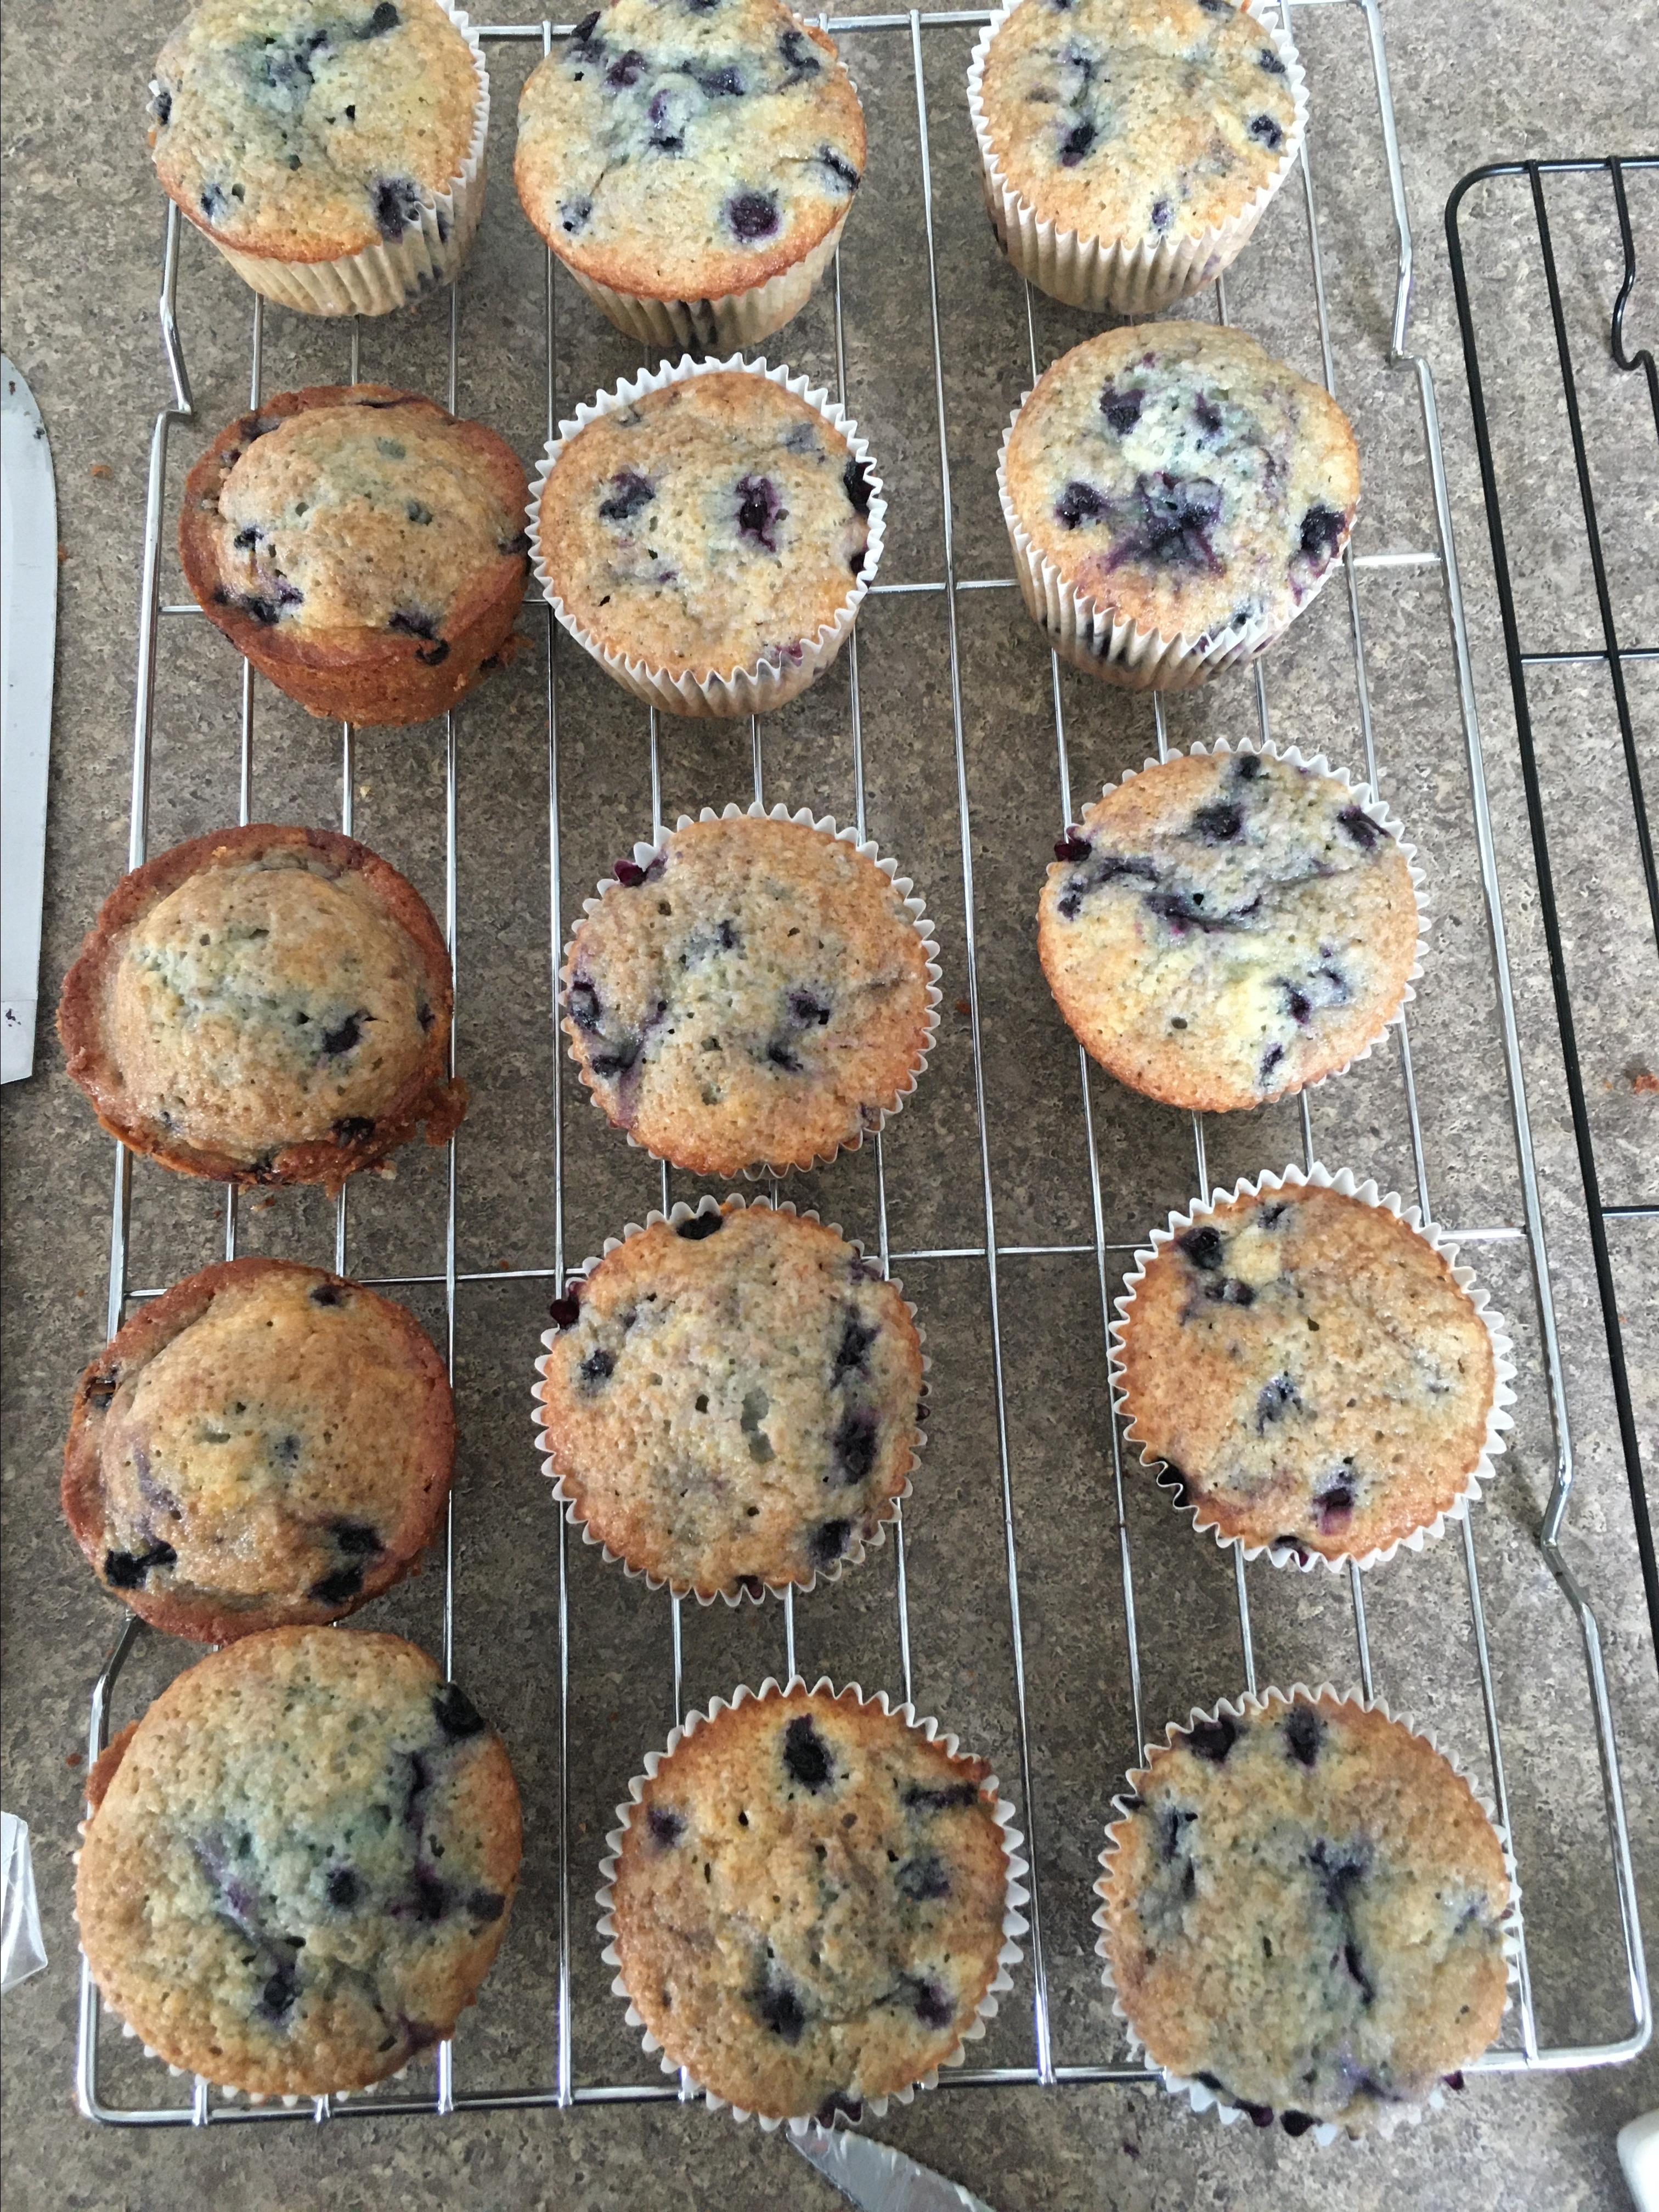 Aunt Blanche's Blueberry Muffins